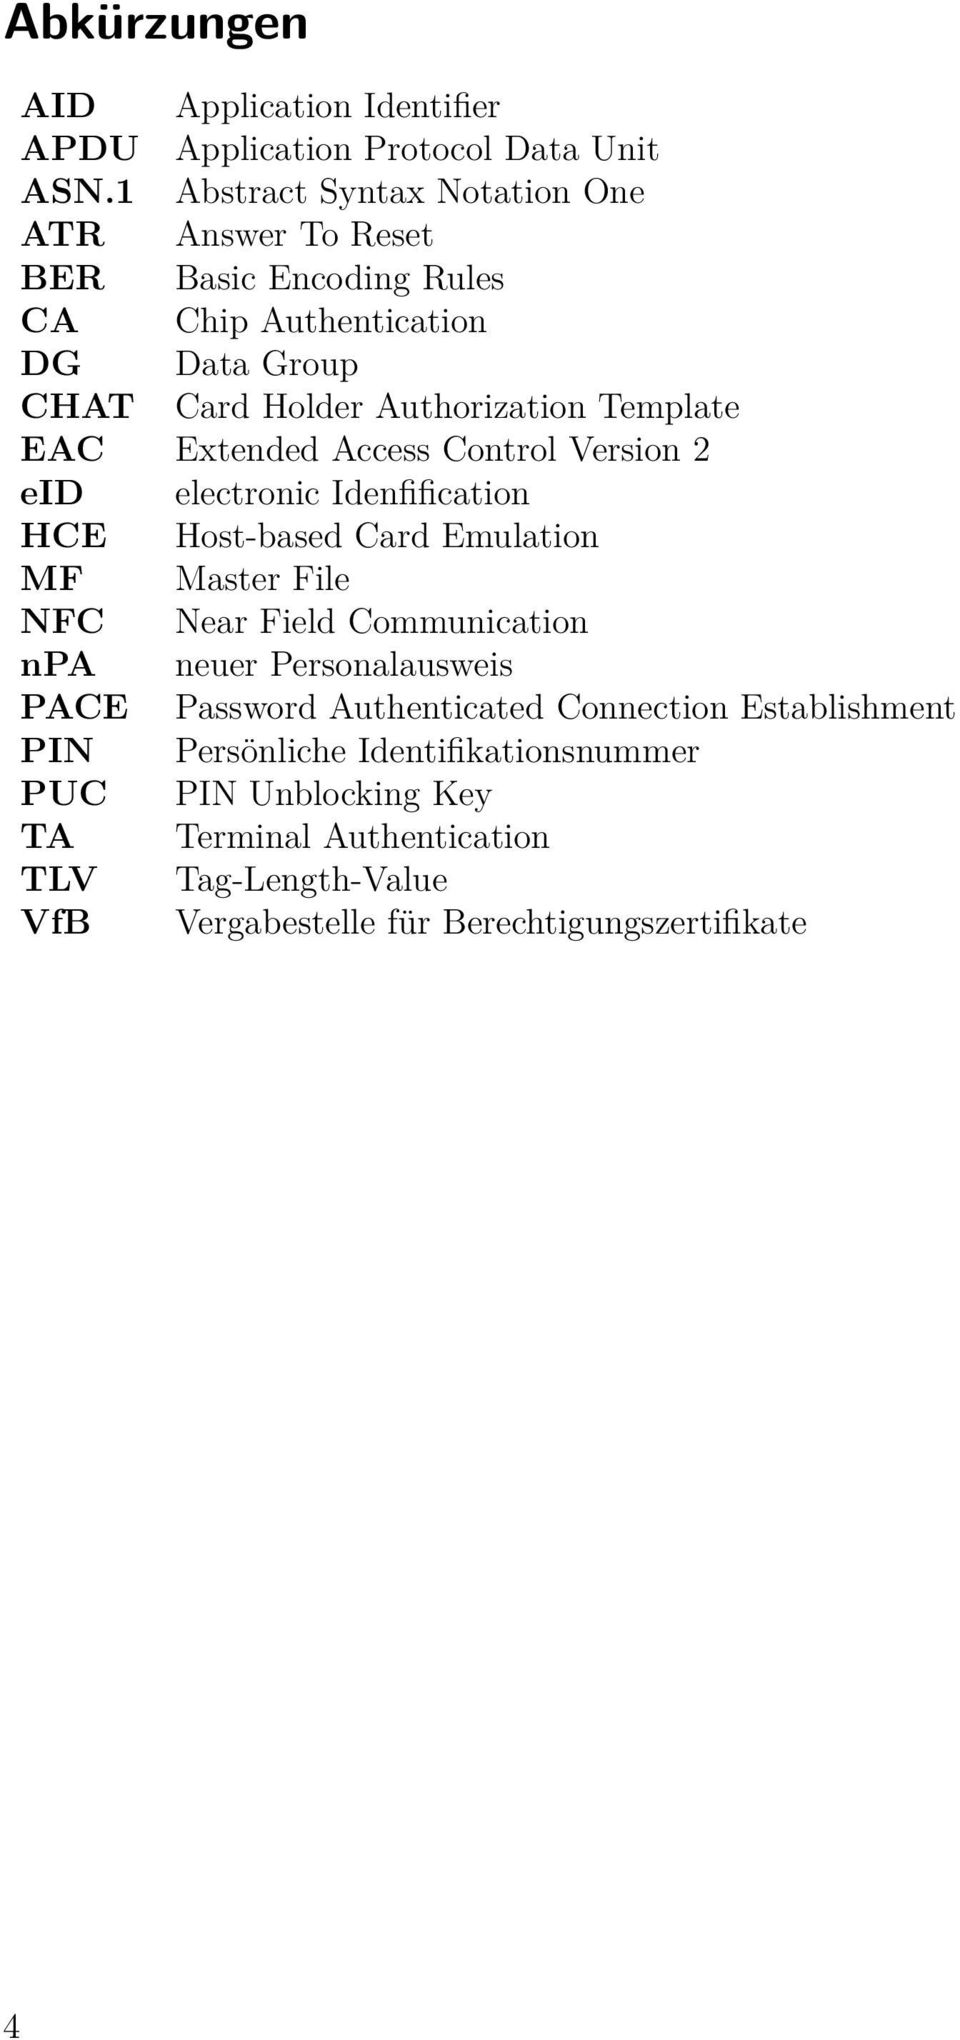 EAC Extended Access Control Version 2 eid electronic Idenfification HCE Host-based Card Emulation MF Master File NFC Near Field Communication npa neuer